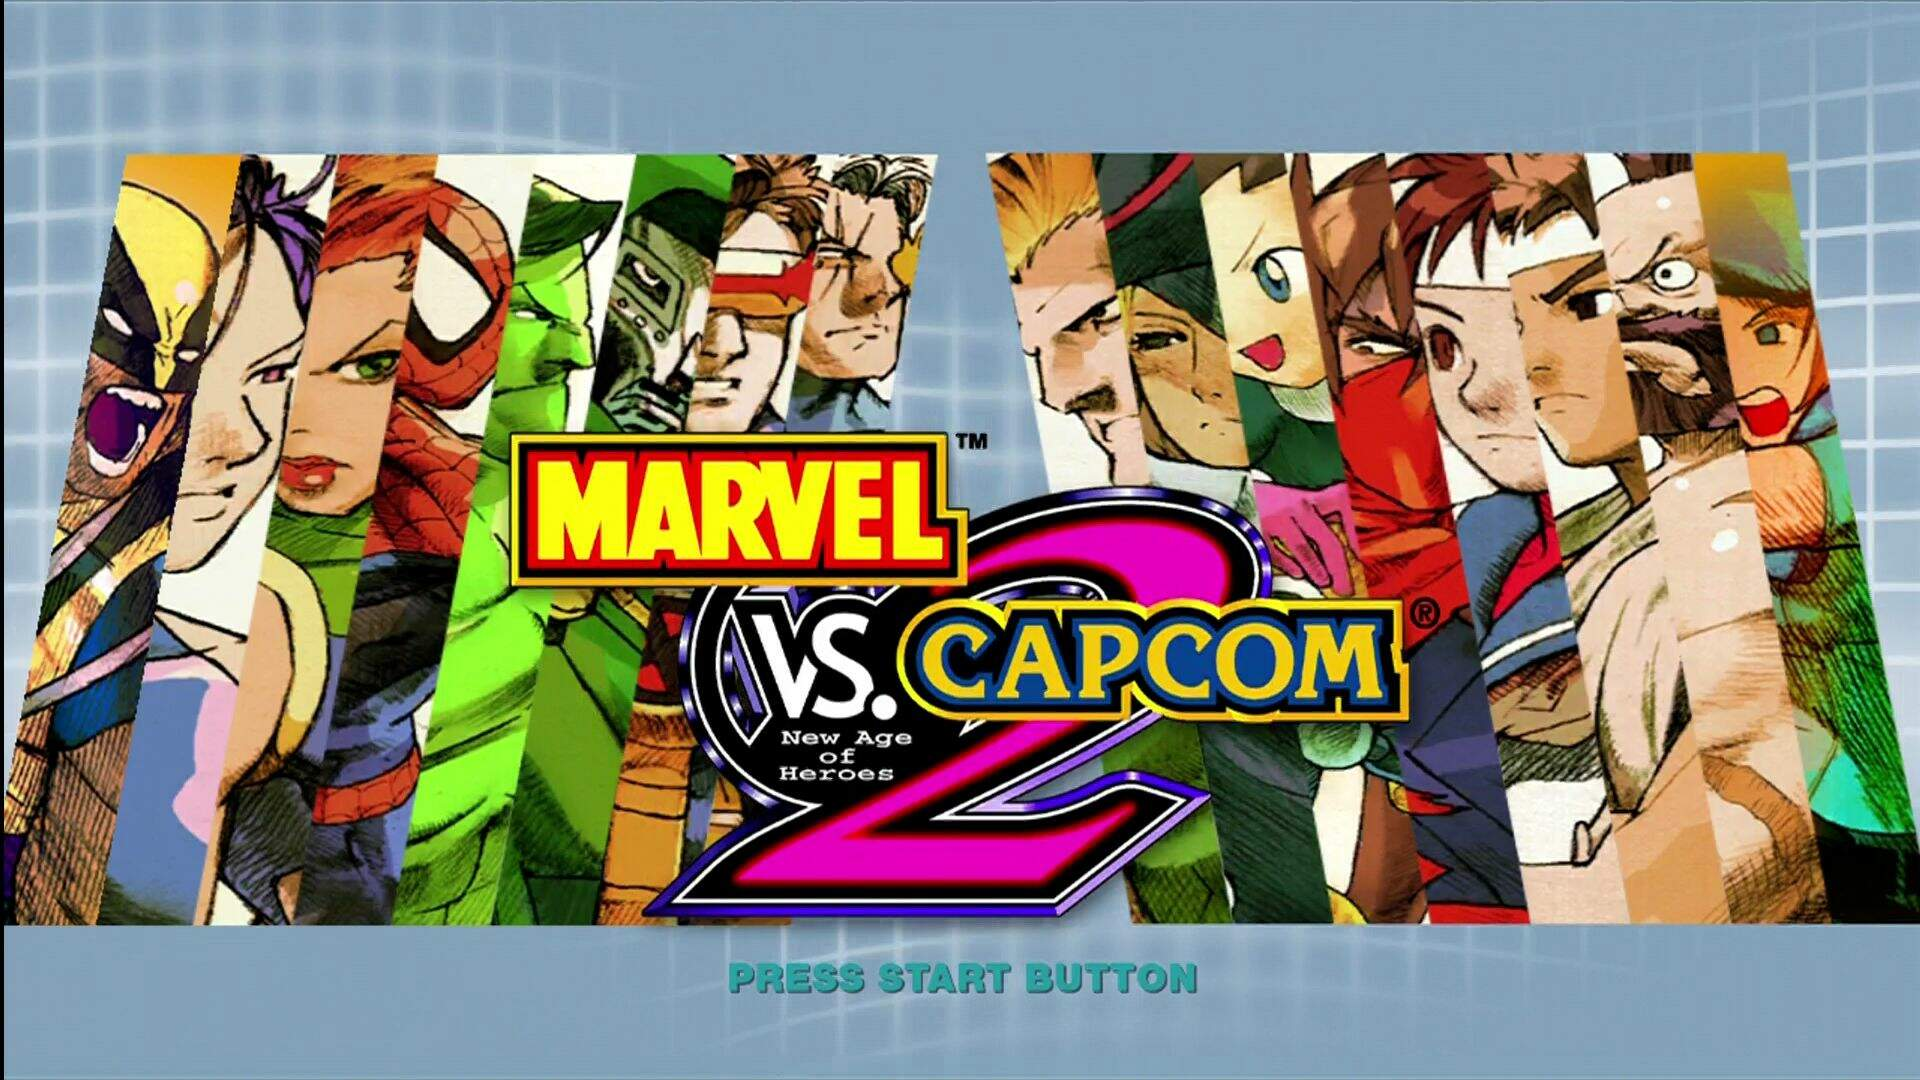 Actor Michael B. Jordan Wants to See More Marvel Vs. Capcom 2, And I'm With Him